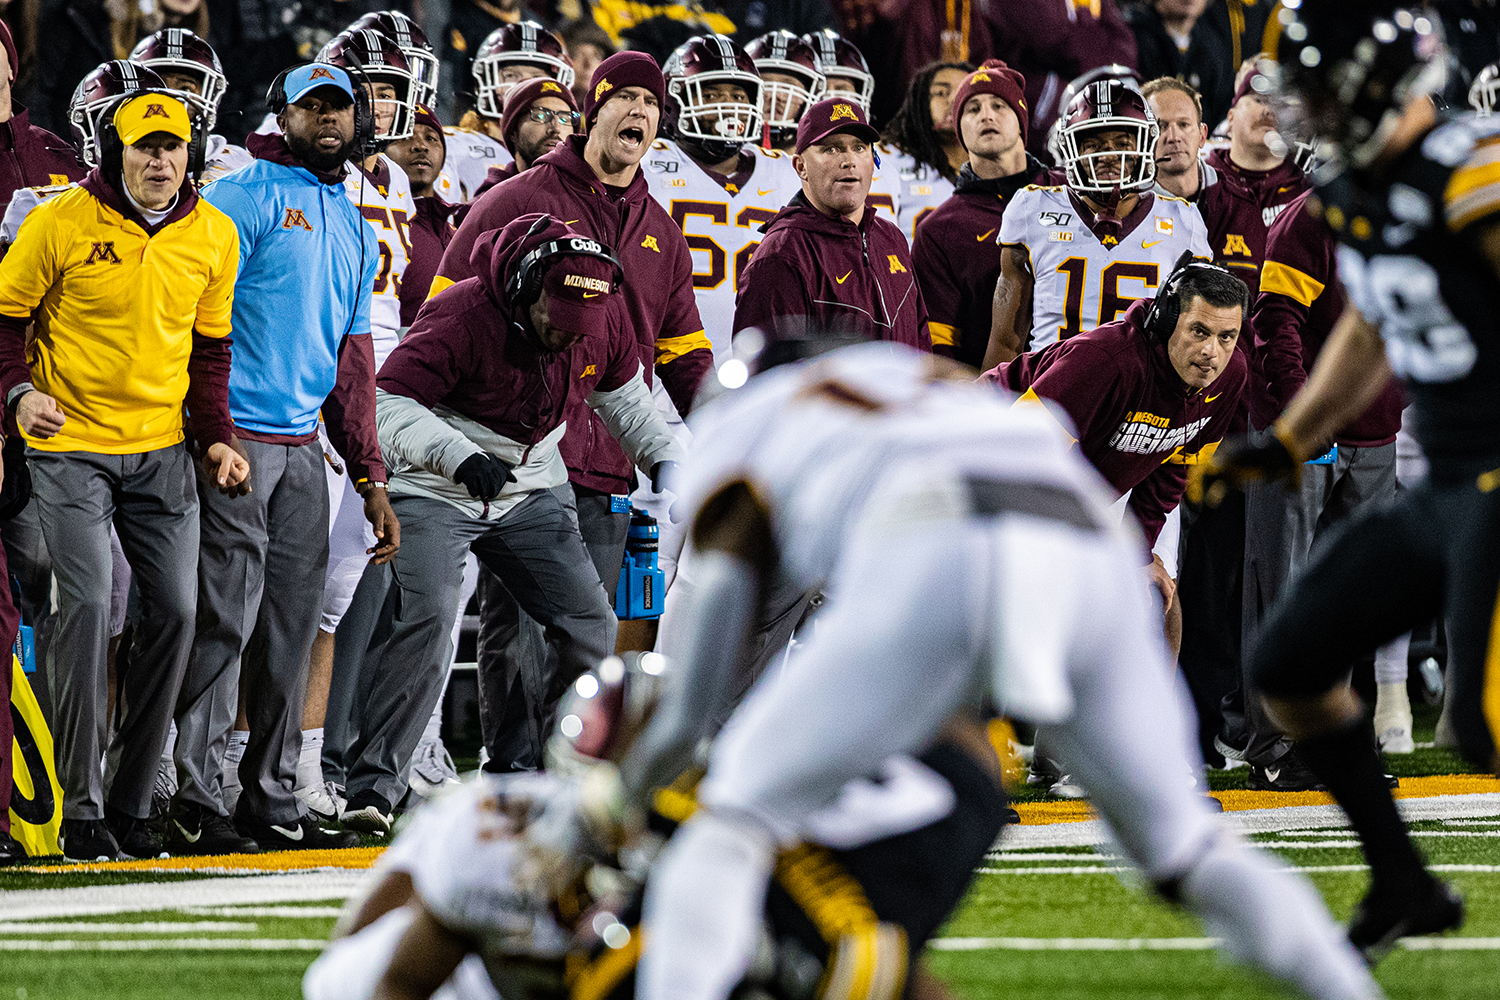 Minnesota coaches watch game action during a football game between Iowa and Minnesota at Kinnick Stadium on Saturday, Nov. 16, 2019. The Hawkeyes defeated the Gophers, 23-19.